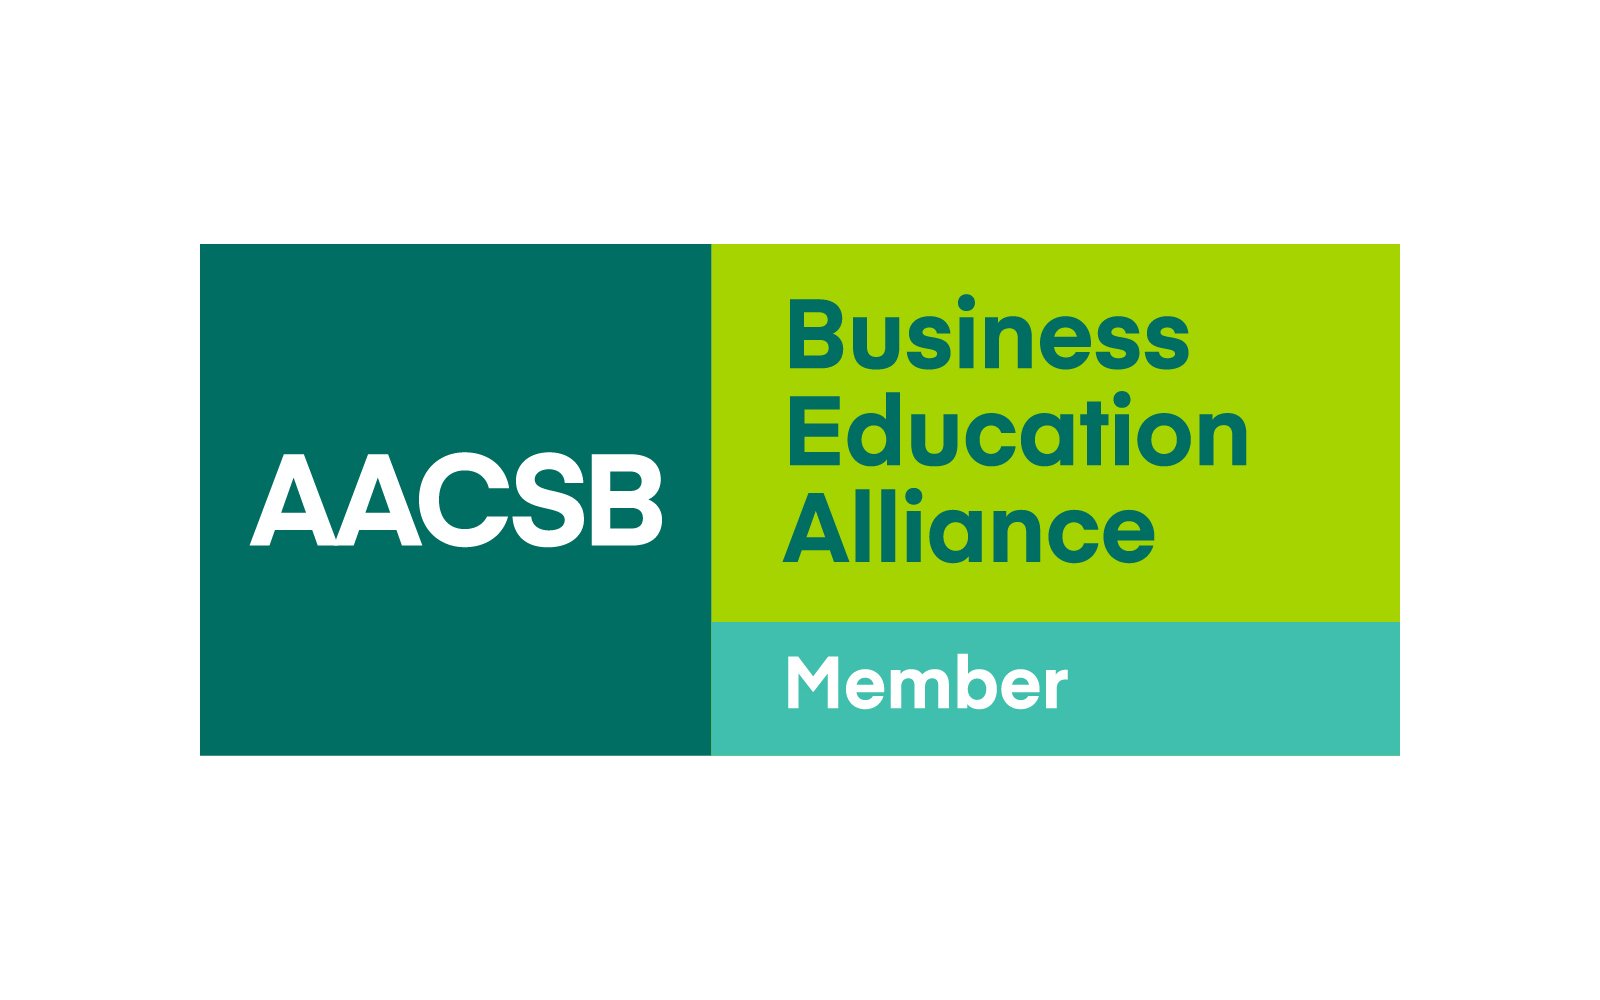 AACSB Announces Brand Transformation, Signals New Era in Business.